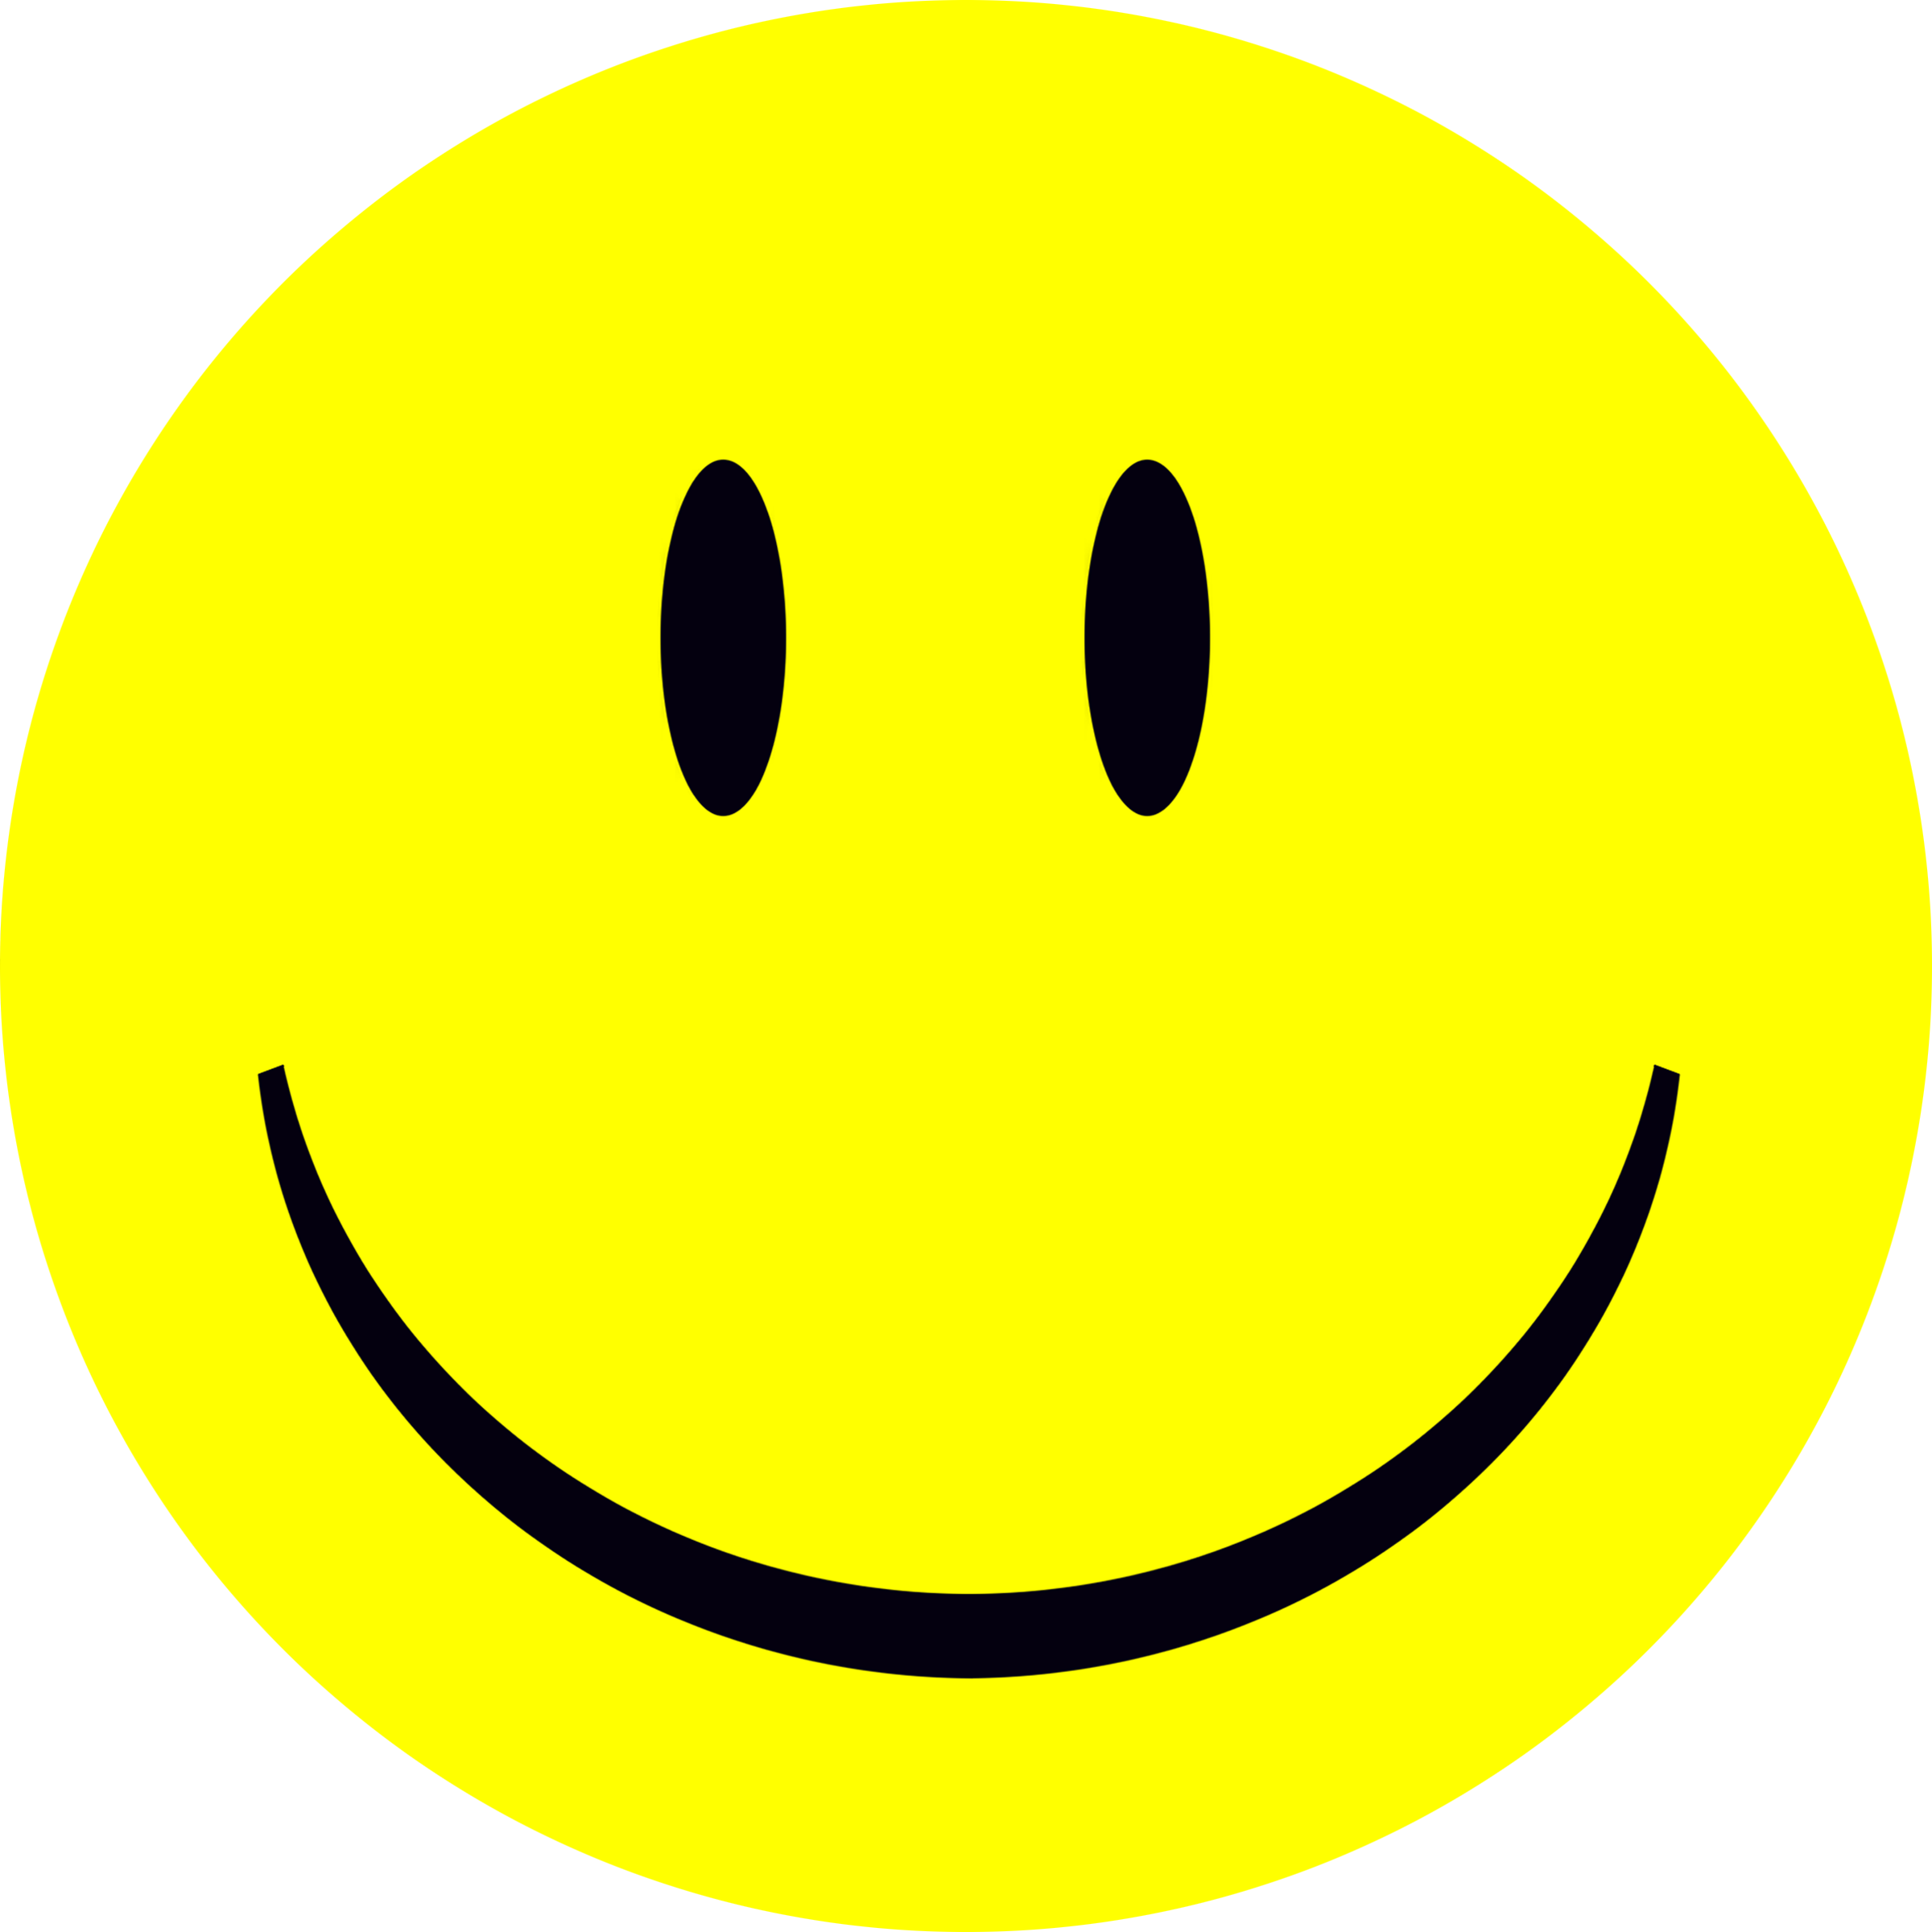 Good morning from the. Exercise clipart smiley face